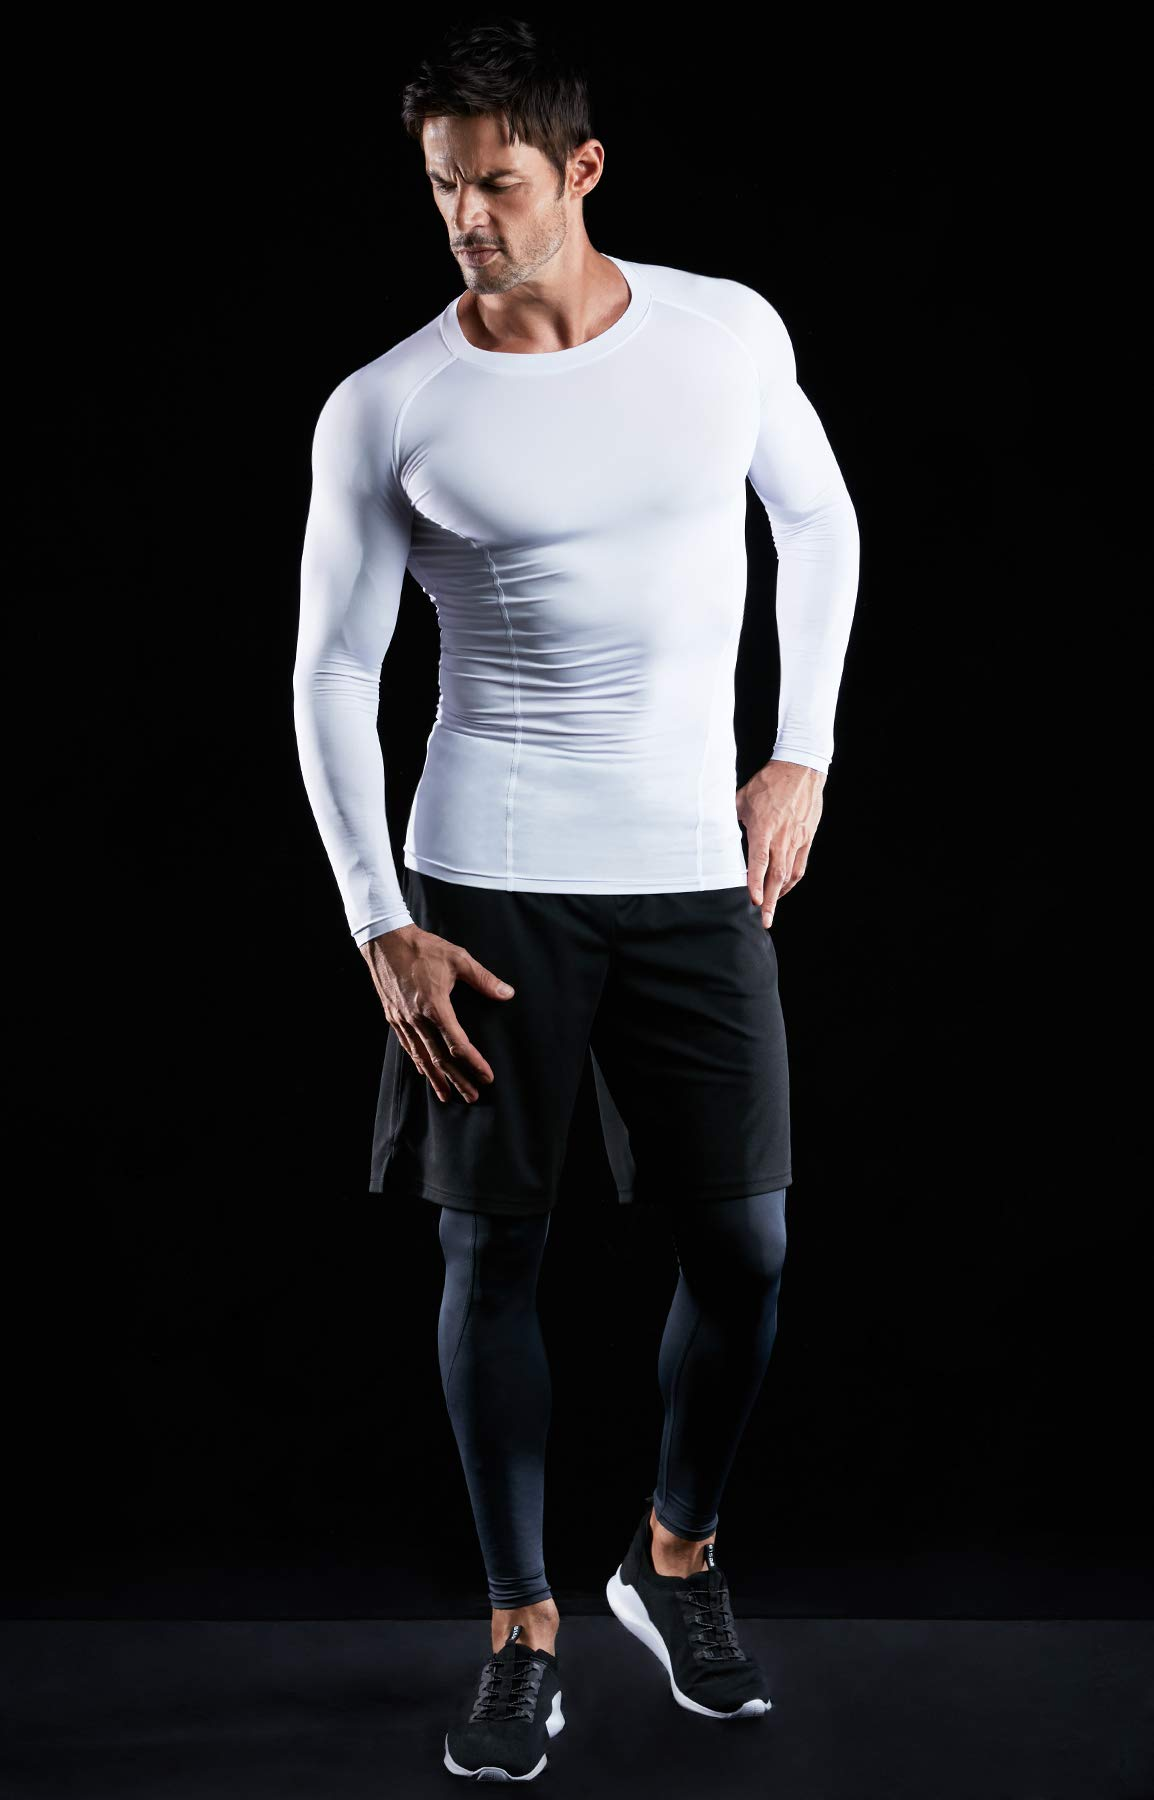 ATHLIO AO-BLS01-WHT_2X-Large Men's (Pack of 3) Cool Dry Compression Long Sleeve Baselayer Athletic Sports T-Shirts Tops BLS01 by ATHLIO (Image #5)